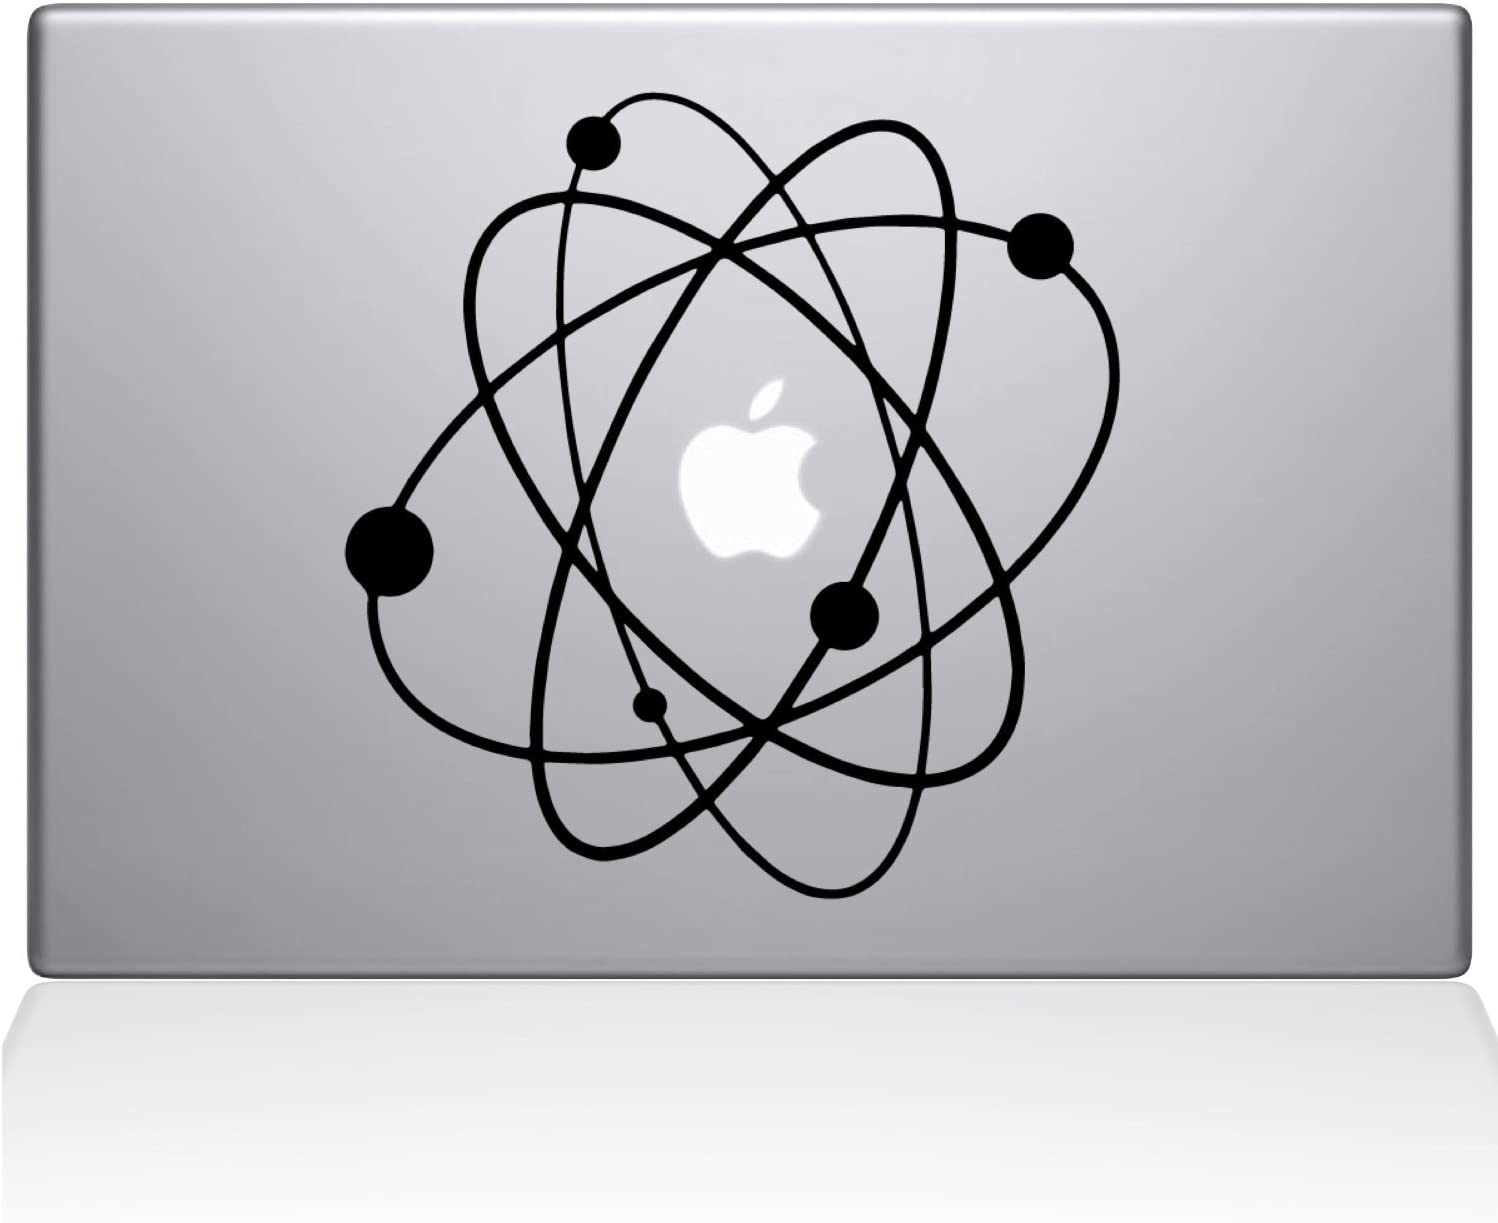 Love Science Atom Big Bang Galaxy Apple Overlay Art Vinyl Decal Sticker Skin Mac Book Air Pro Laptop Notebook People Love (Newest Version) (Black. Love Science Atom Big Bang Galaxy)